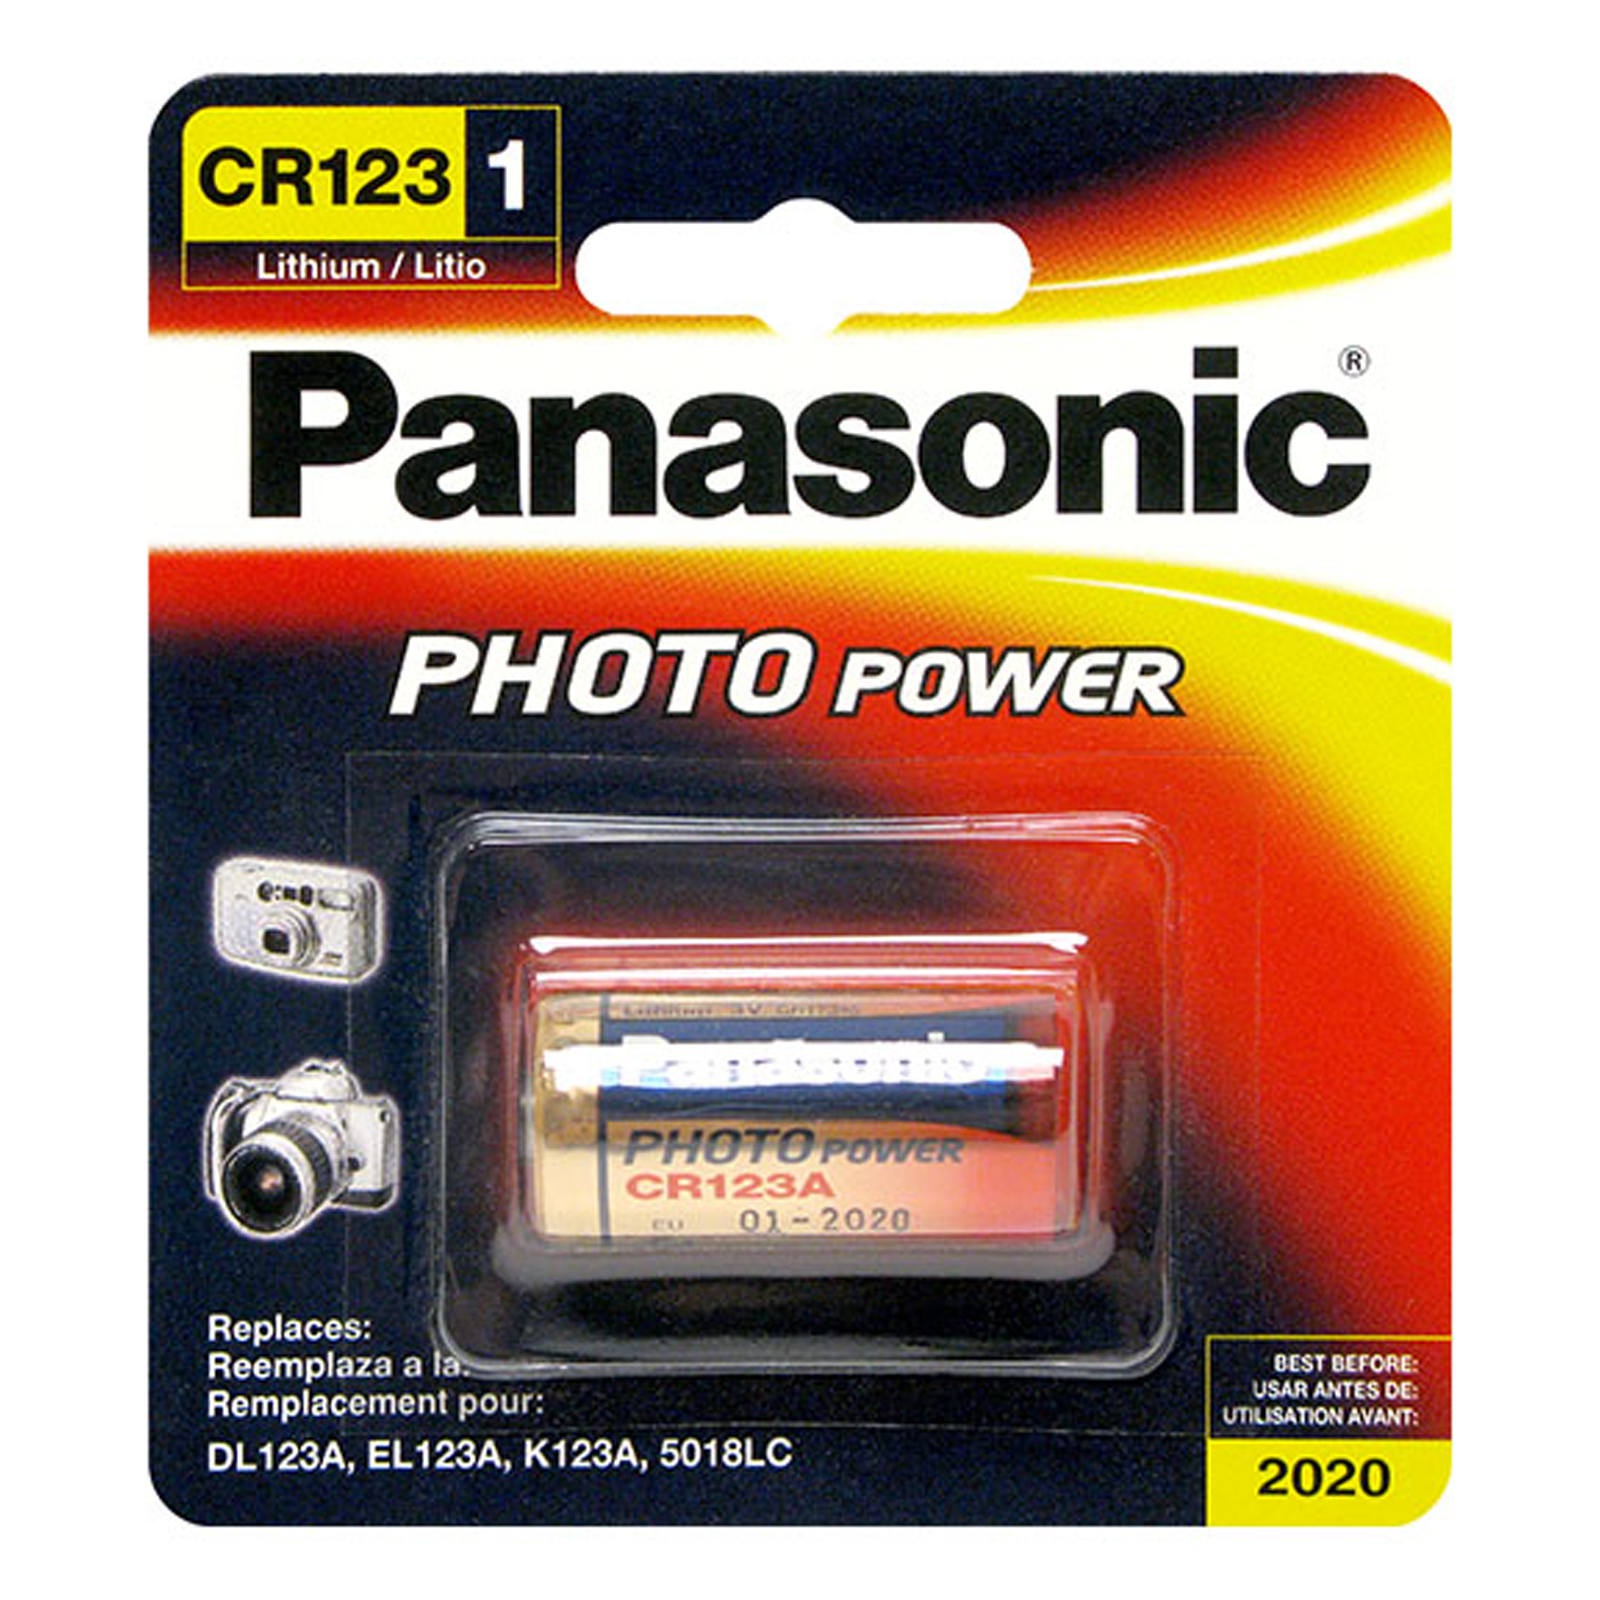 Panasonic 3v cr 123 23a photo lithium battery replace el123 k123a panasonic 3v cr 123 23a photo lithium battery replace el123 k123a fast usa ship fandeluxe Choice Image